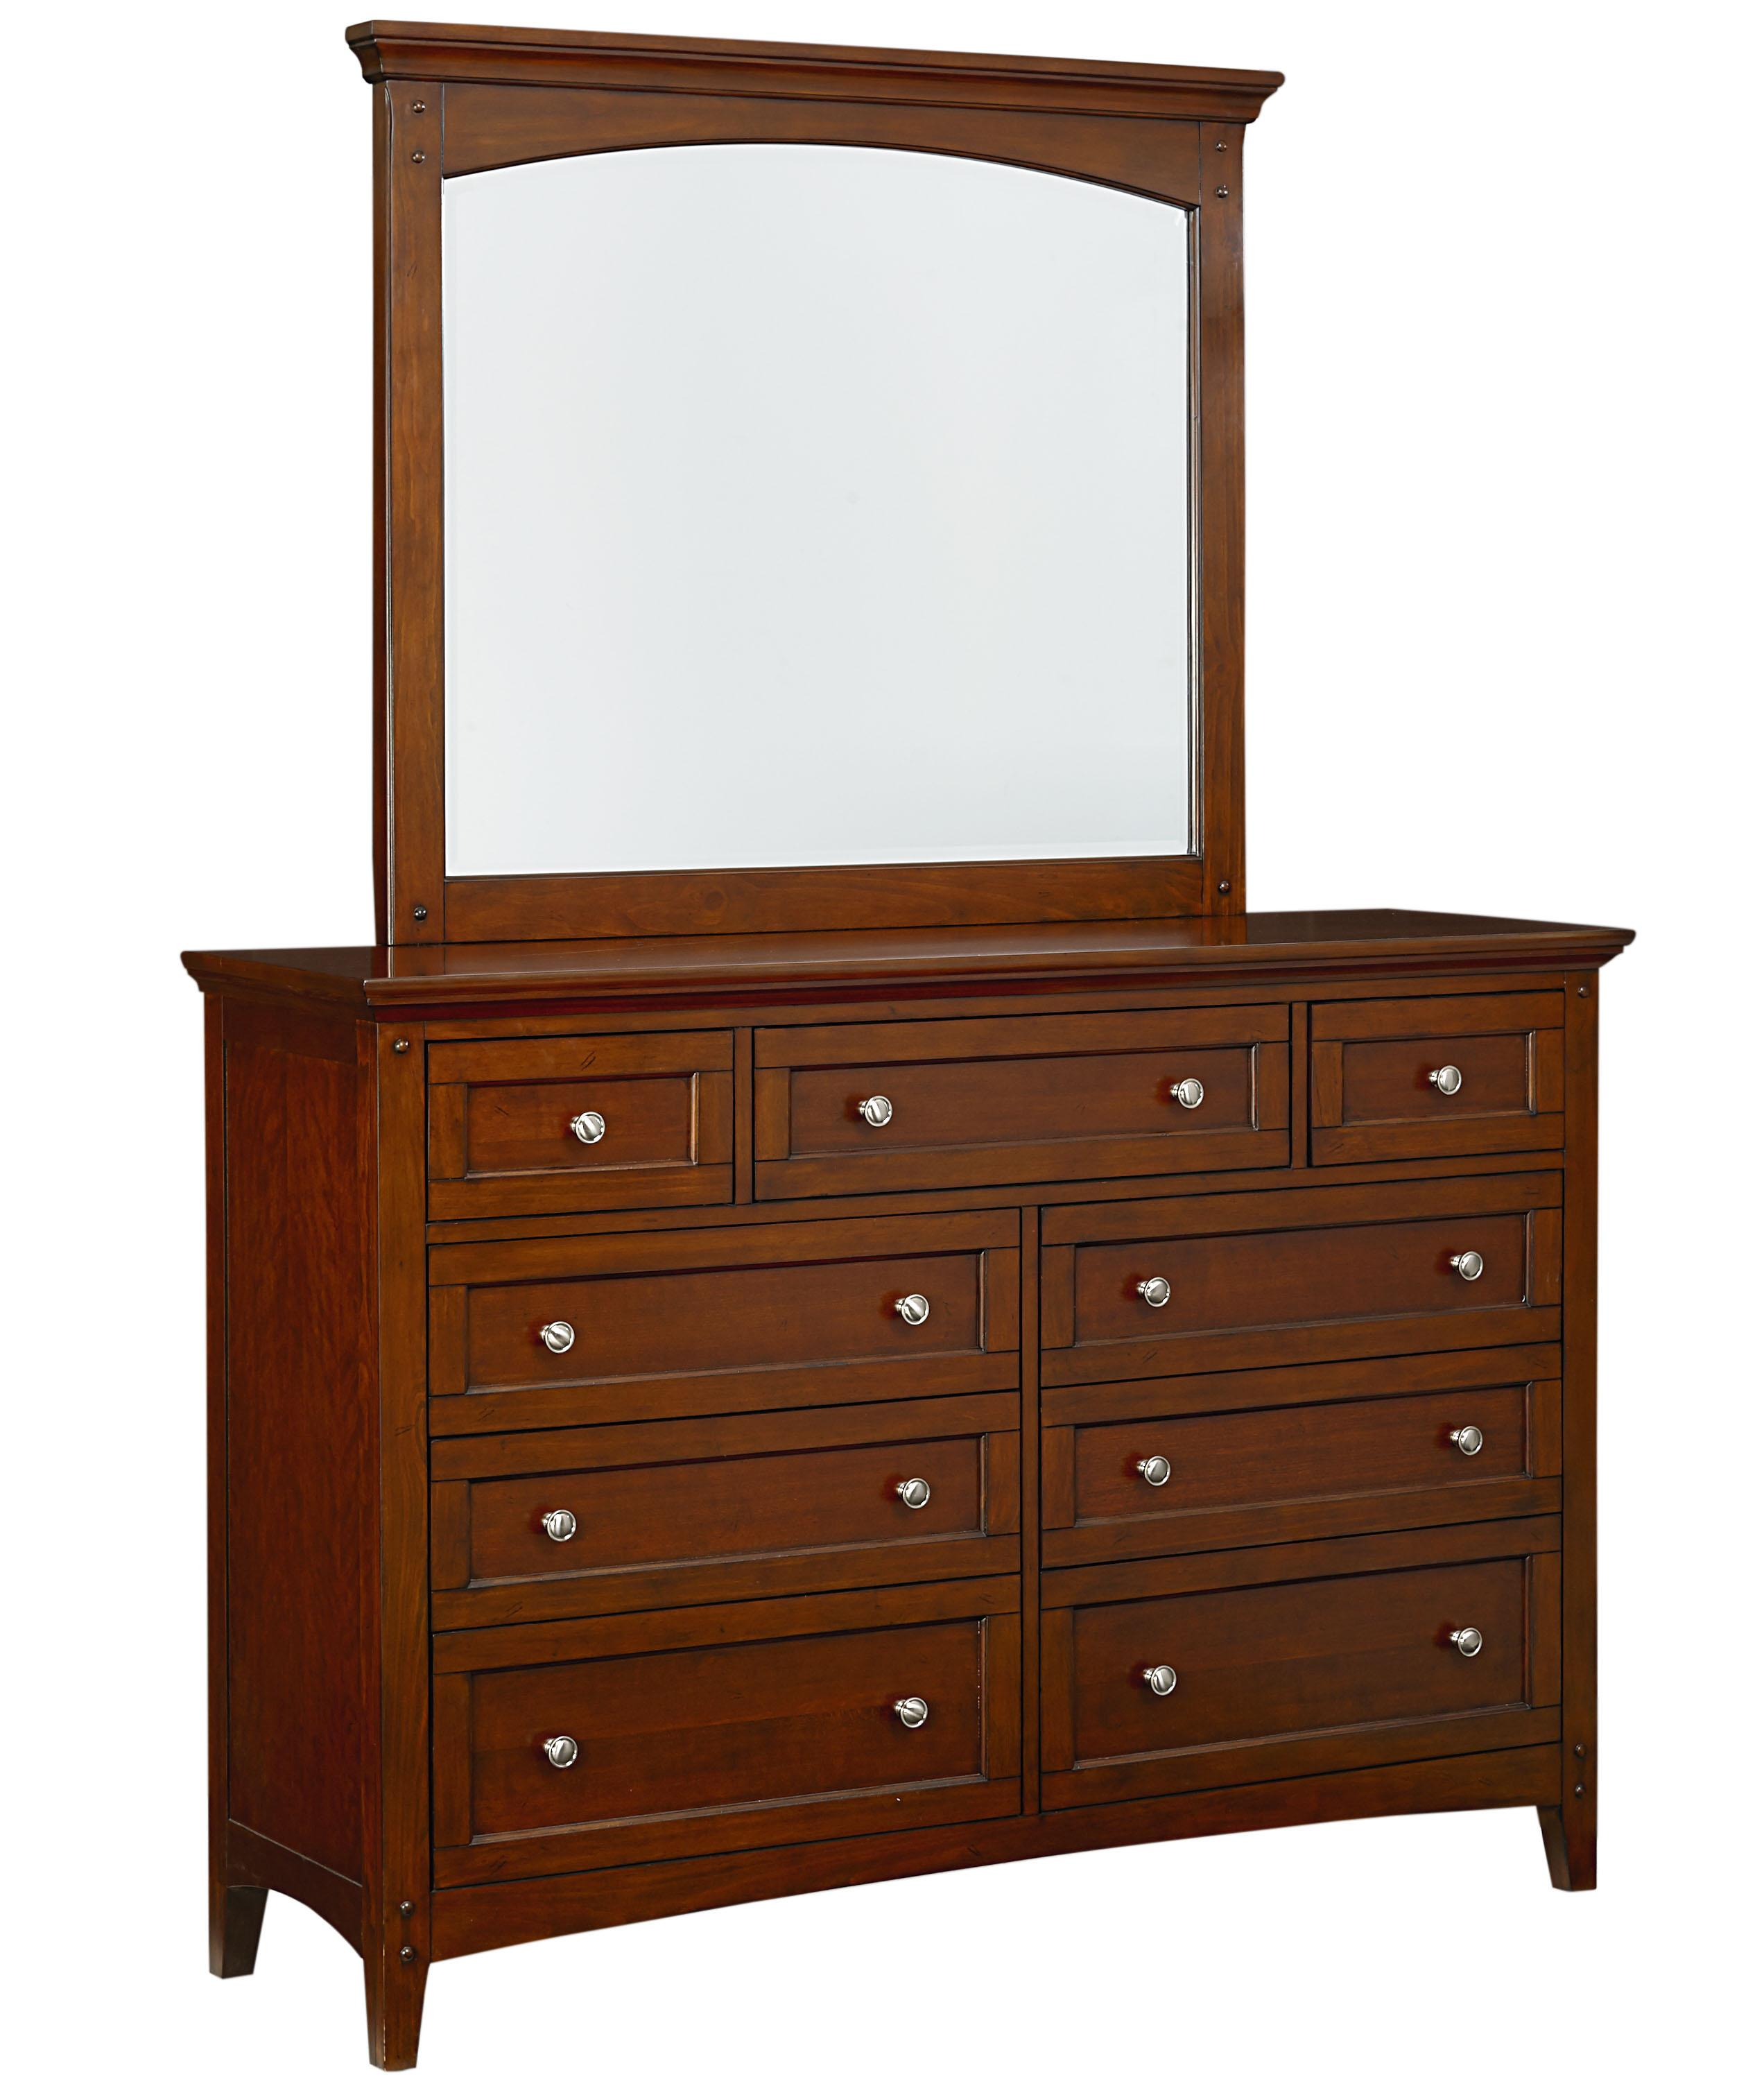 Standard Furniture Cooperstown Dresser and Mirror - Item Number: 93809+08